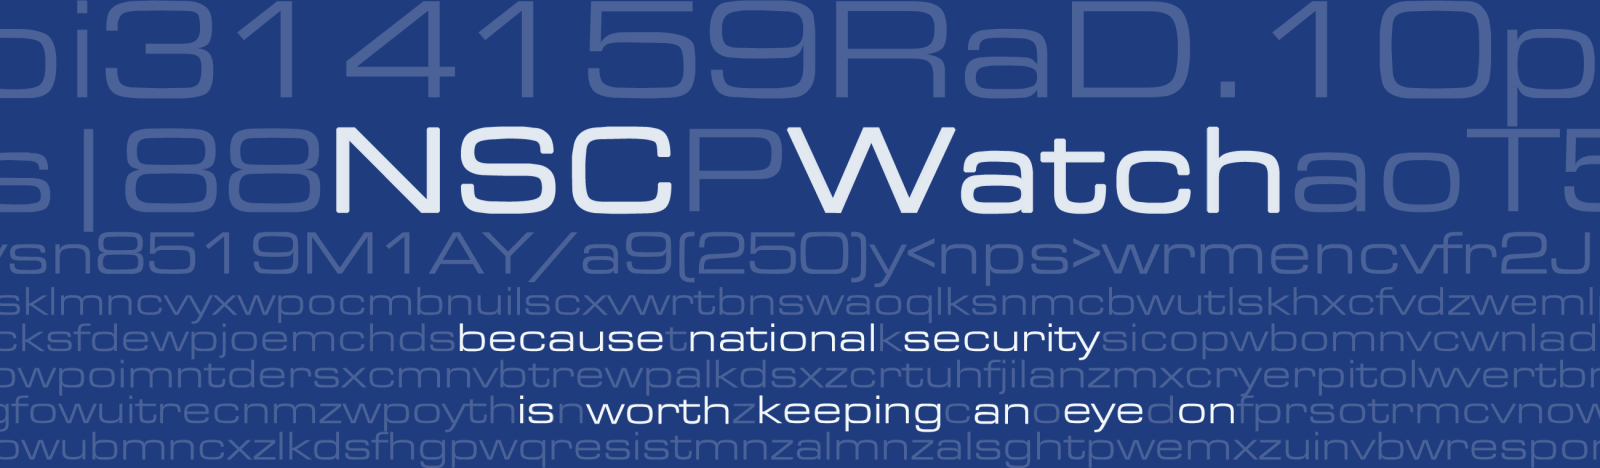 NSC Watch